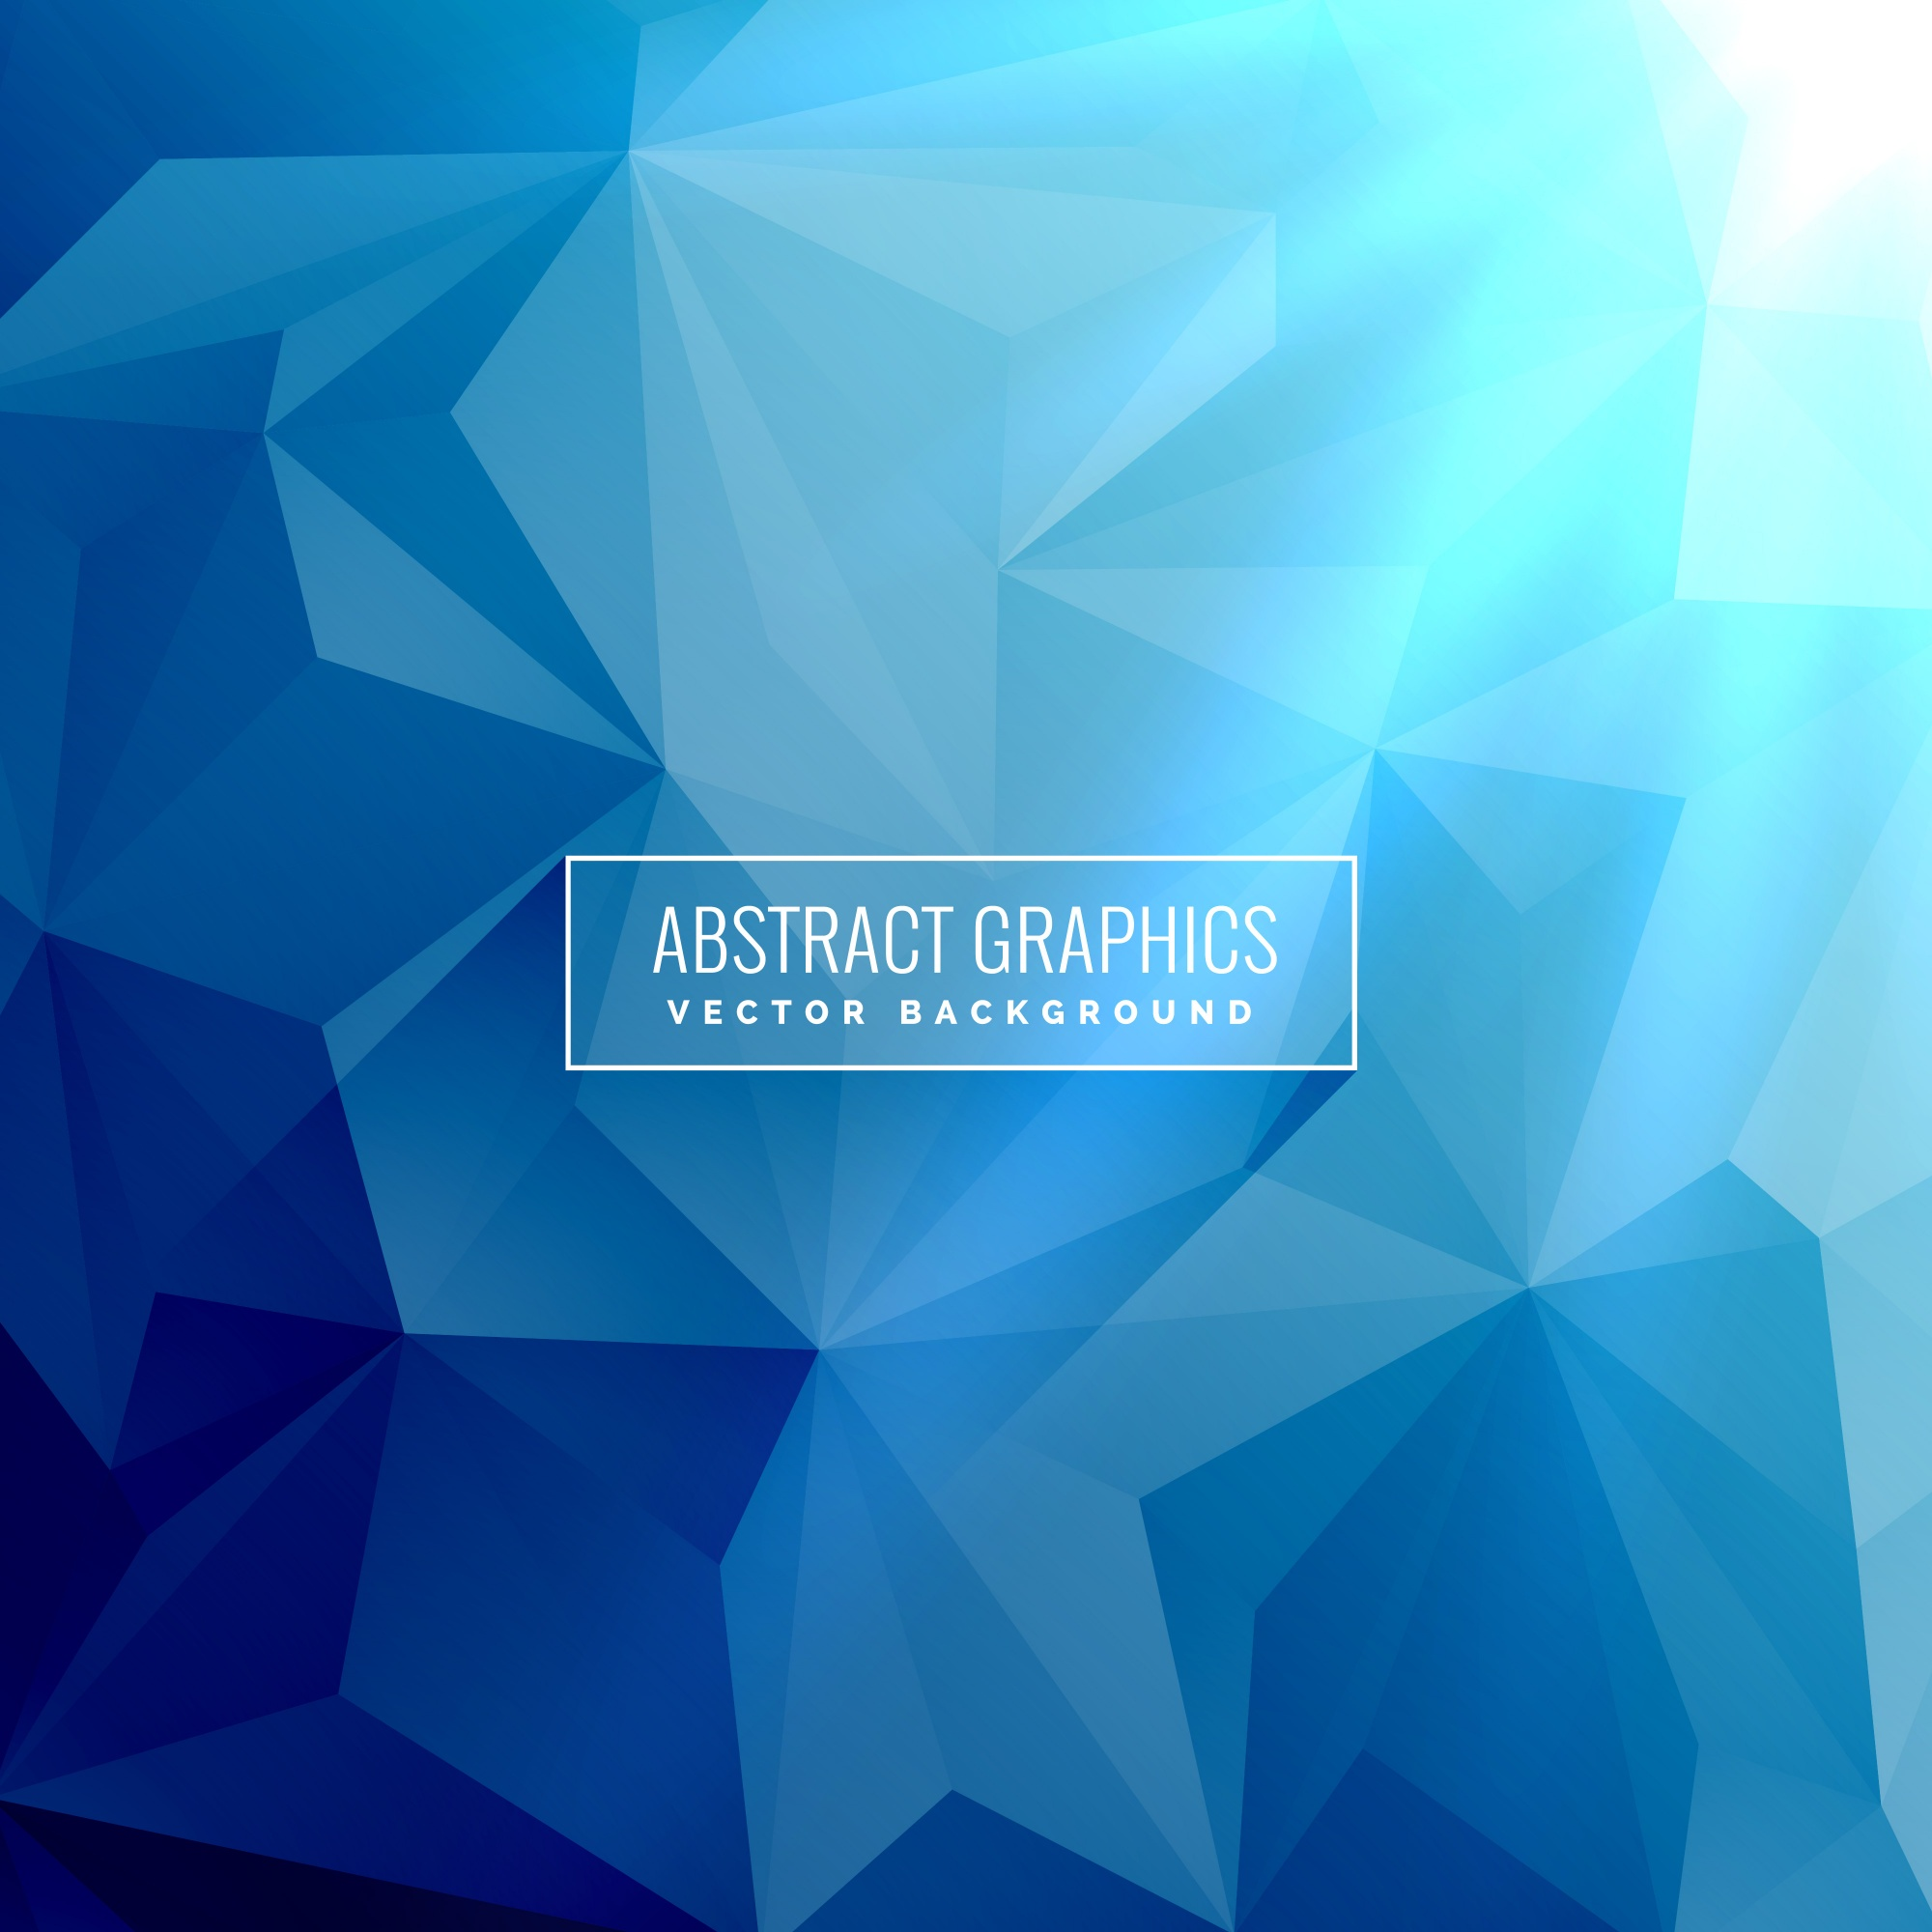 Abstract blue background with low poly triangle shapes